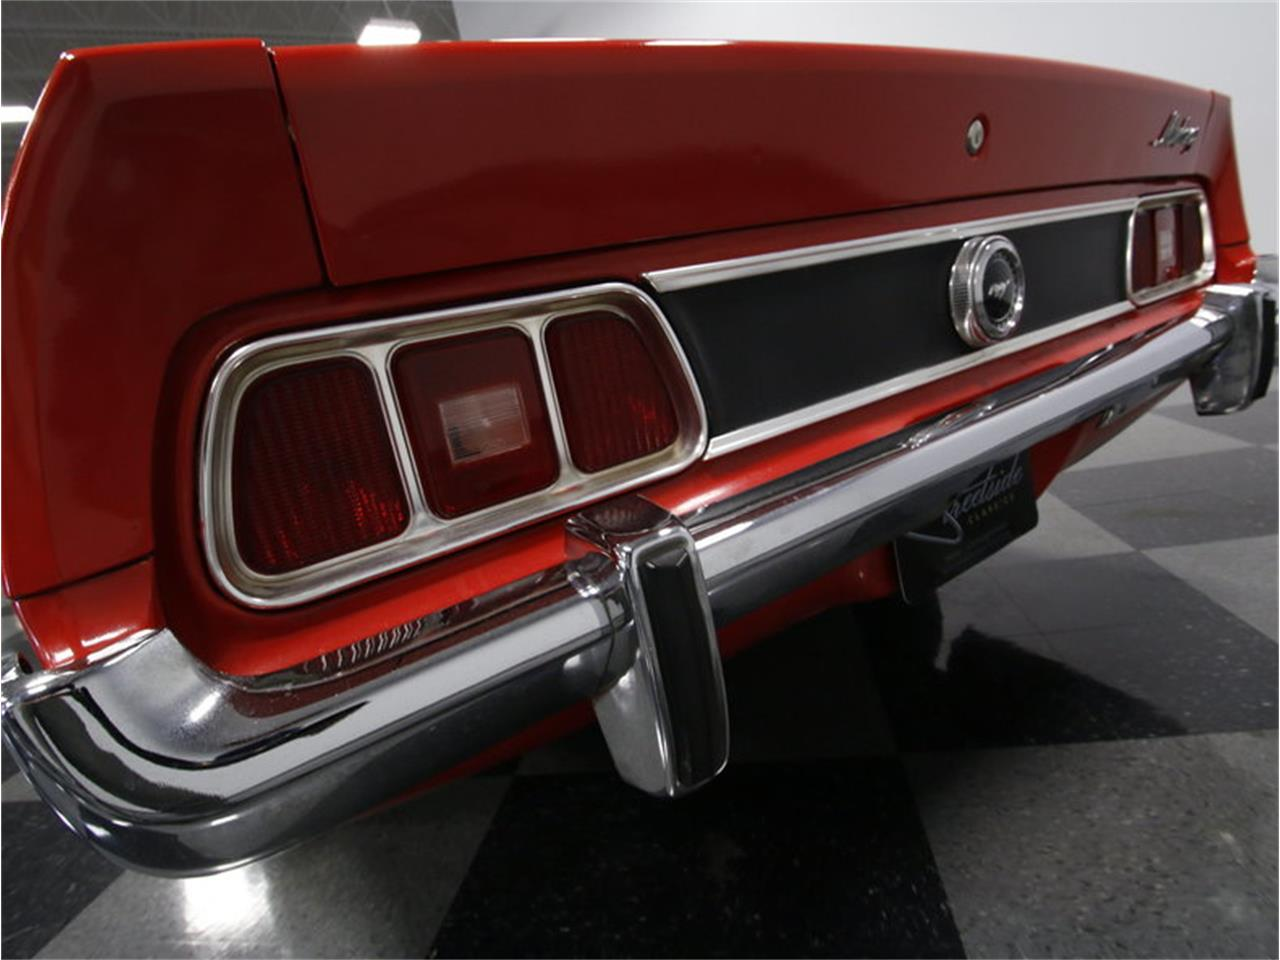 Large Picture of 1973 Ford Mustang located in Concord North Carolina - $23,995.00 Offered by Streetside Classics - Charlotte - MZGC